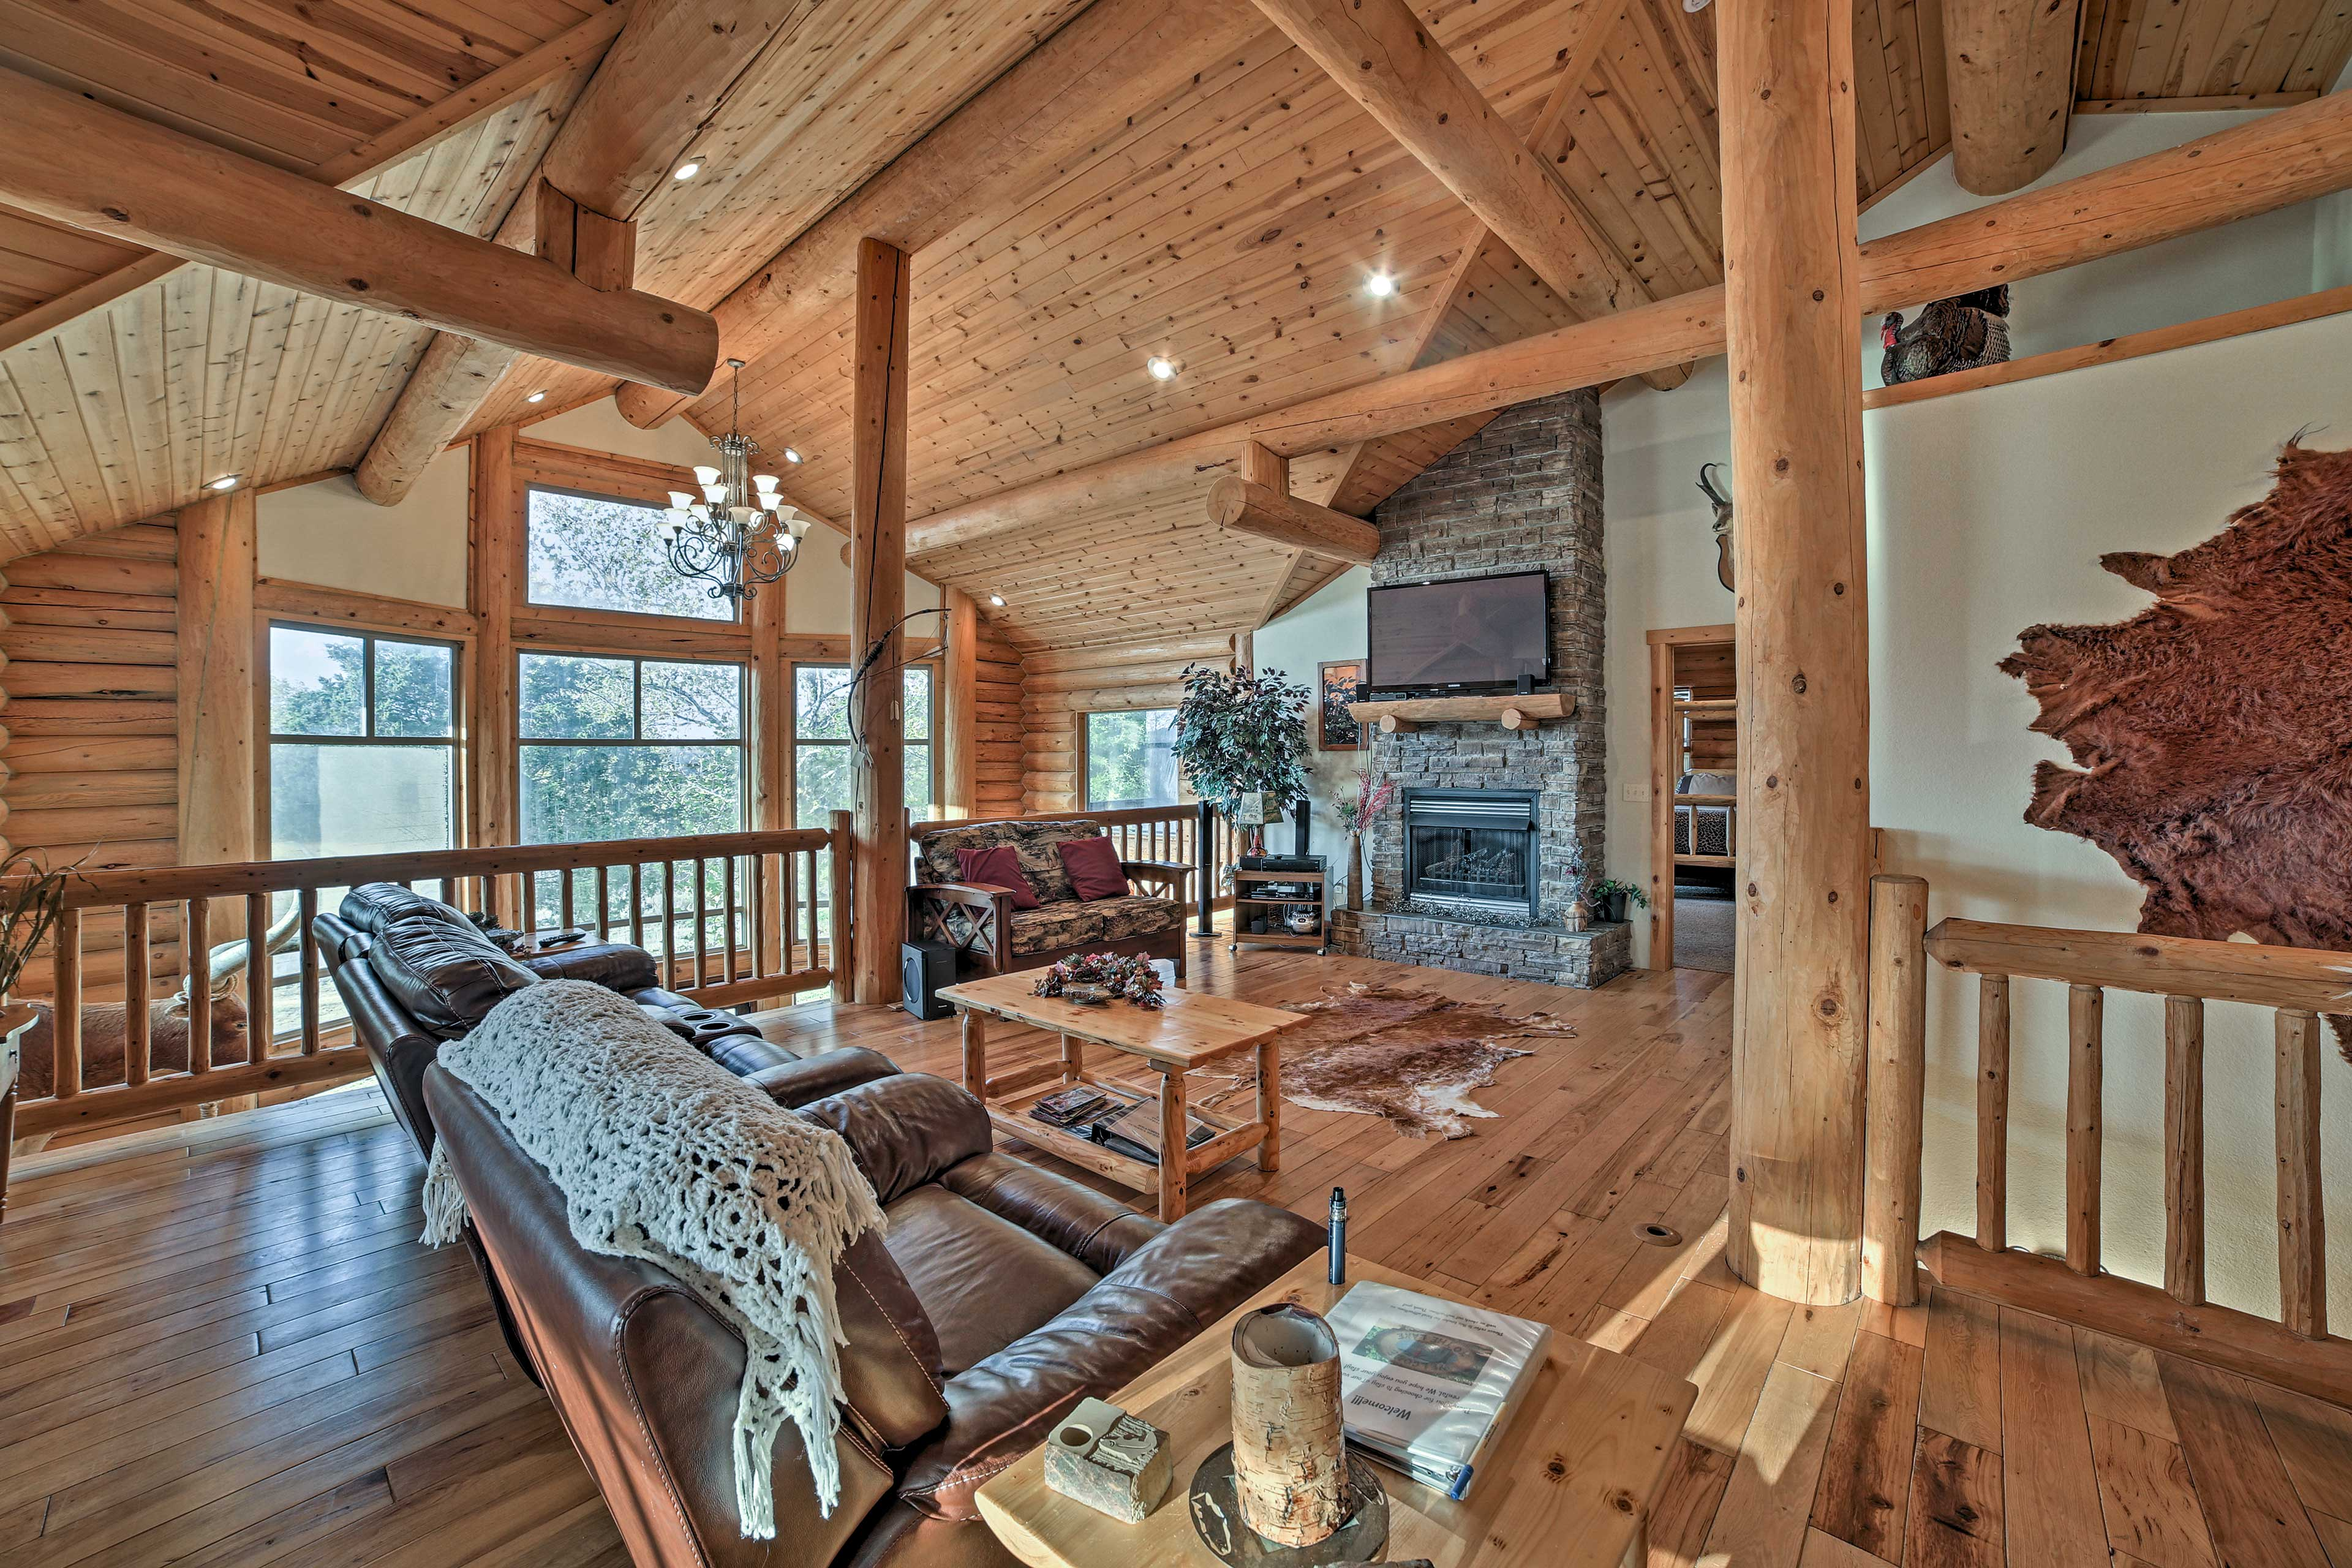 This impressive 3,200-square-foot log cabin boasts accommodations for 12.